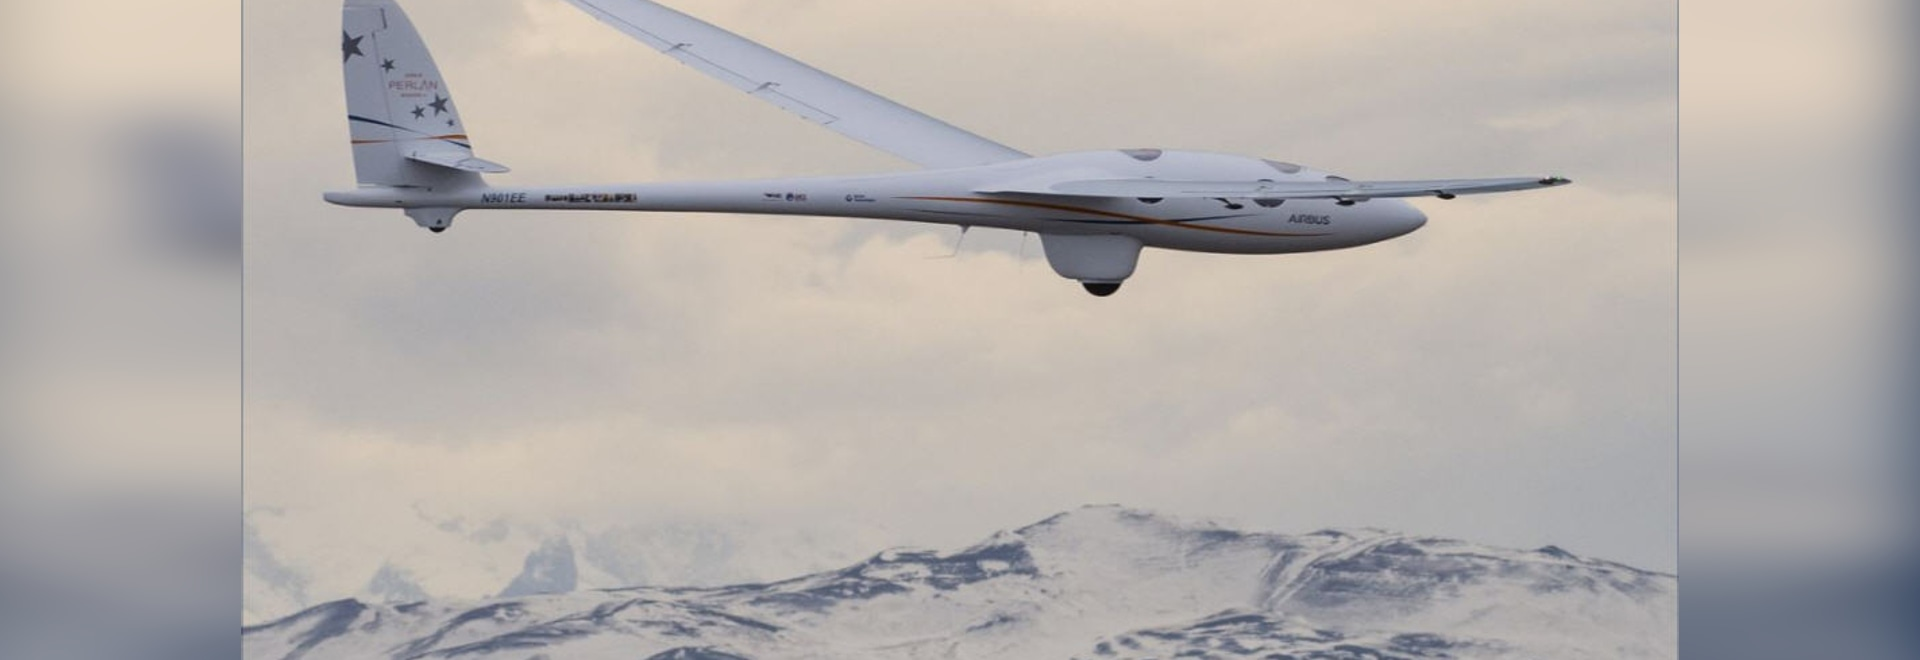 Airbus Perlan Mission II Soars Into History